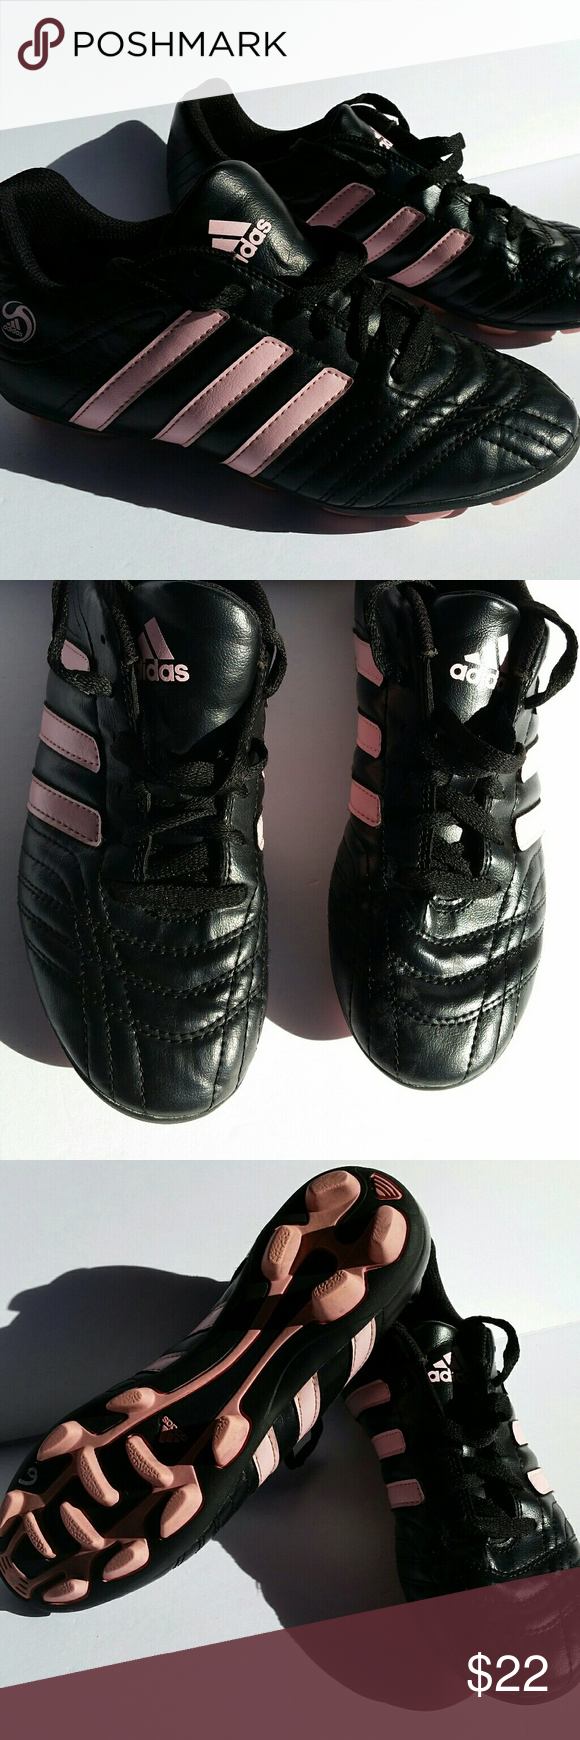 Adidas Youth Soccer Cleats Size 5 Youth Soccer Cleats Cleats Shoes Sneakers Adidas